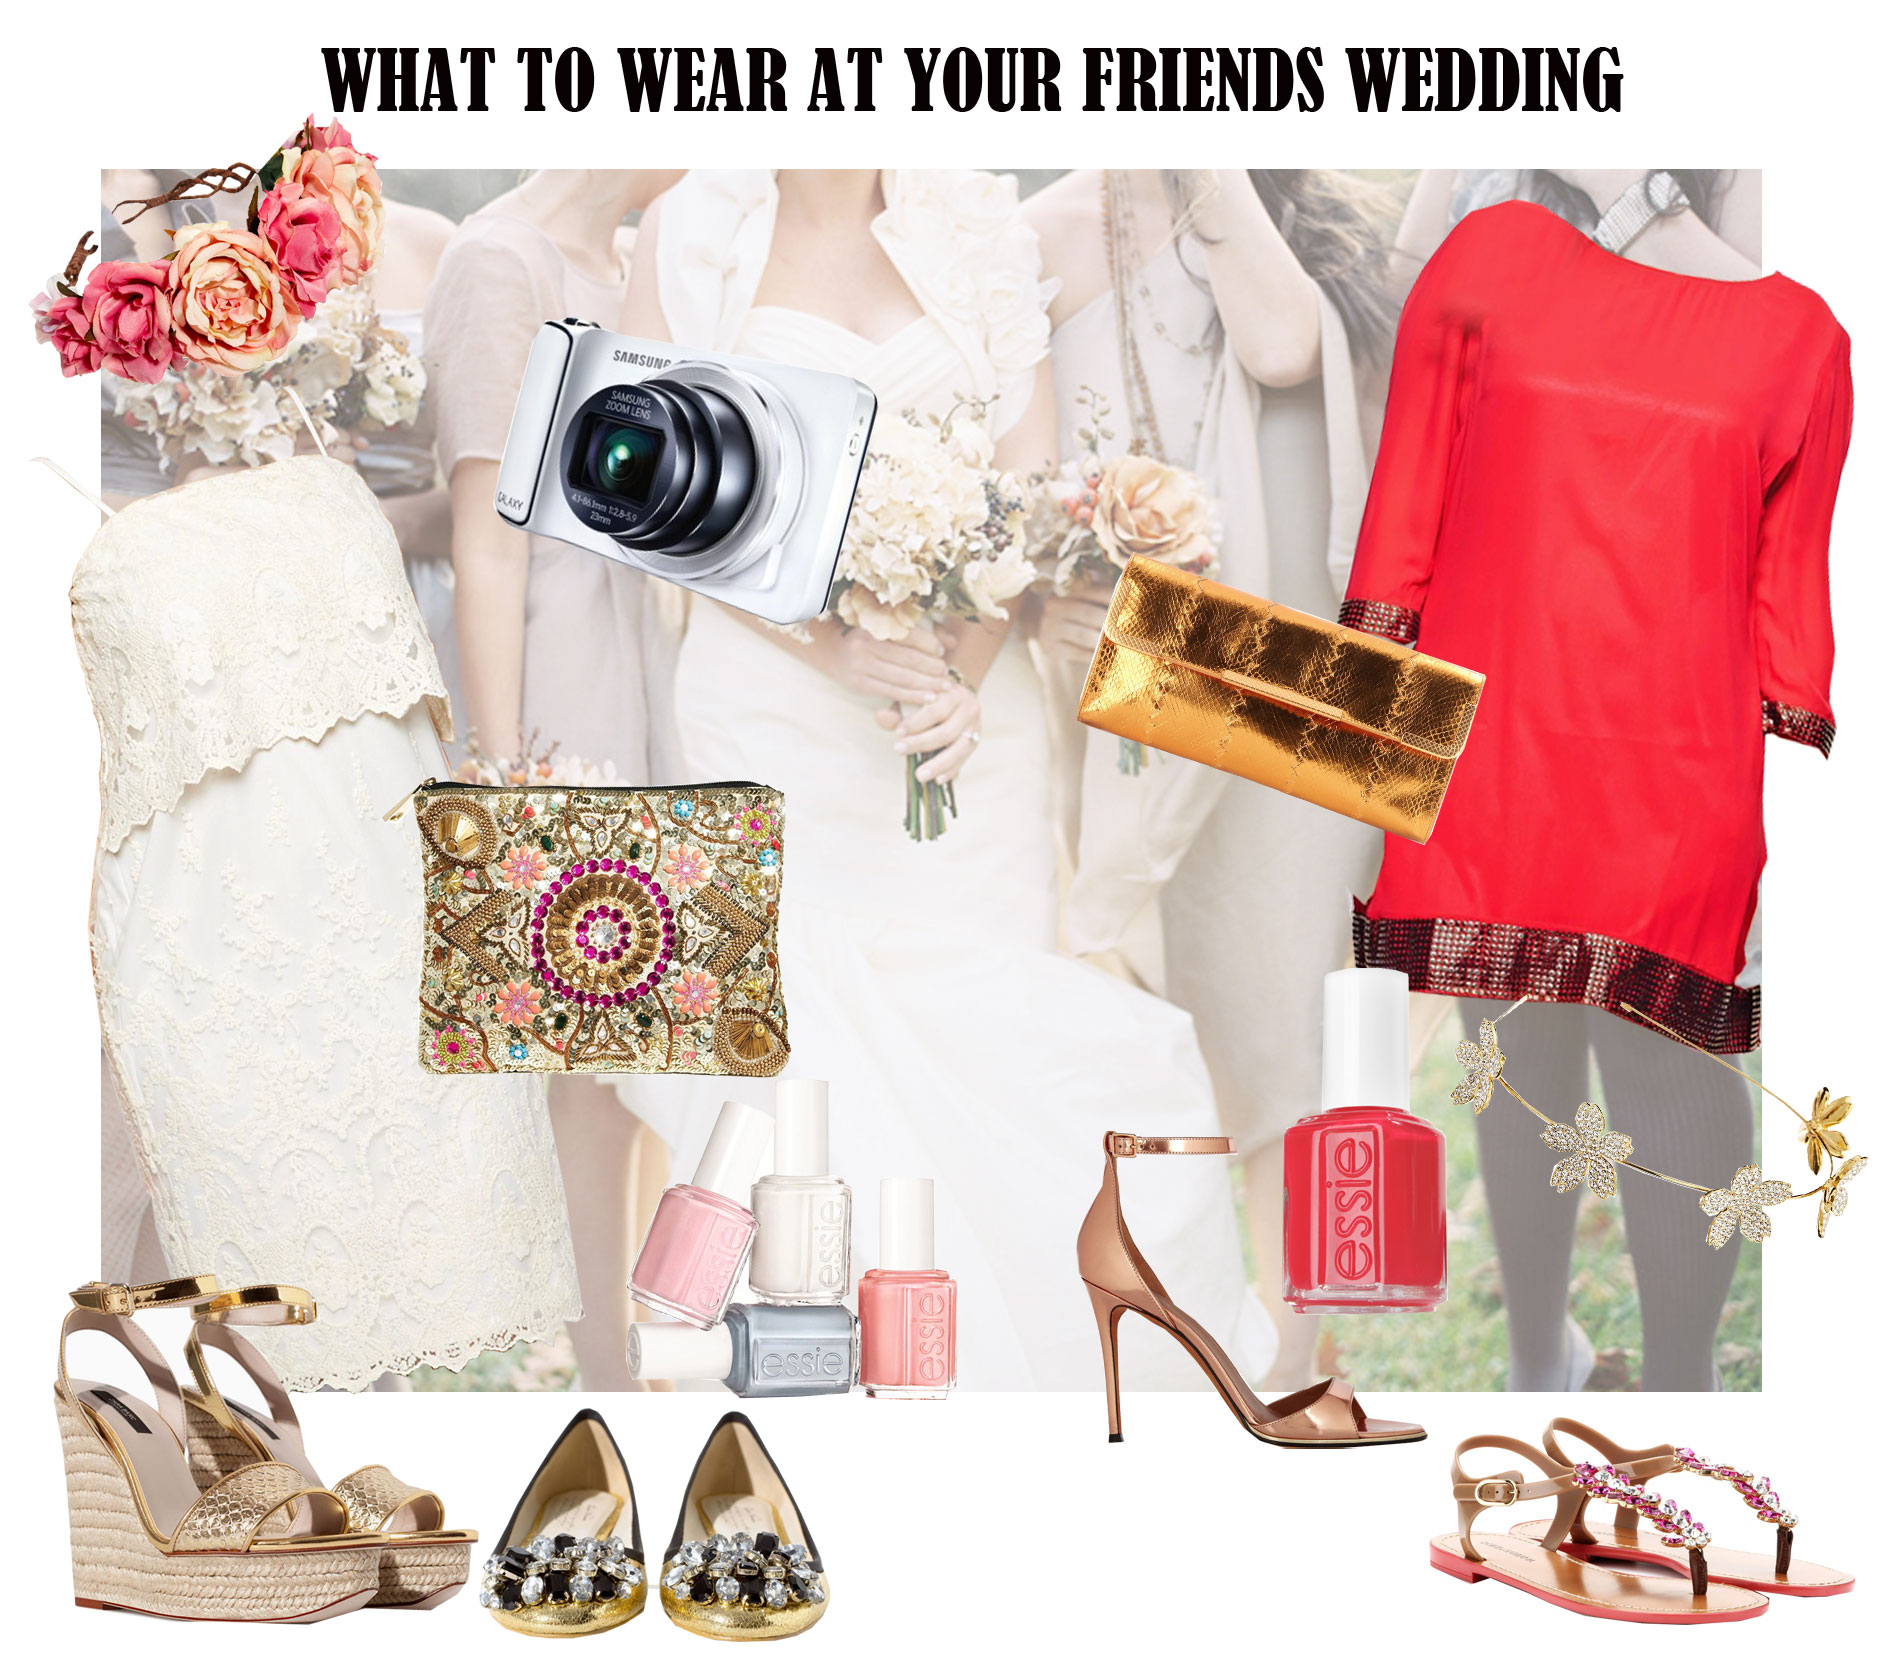 marry-me - what to wear